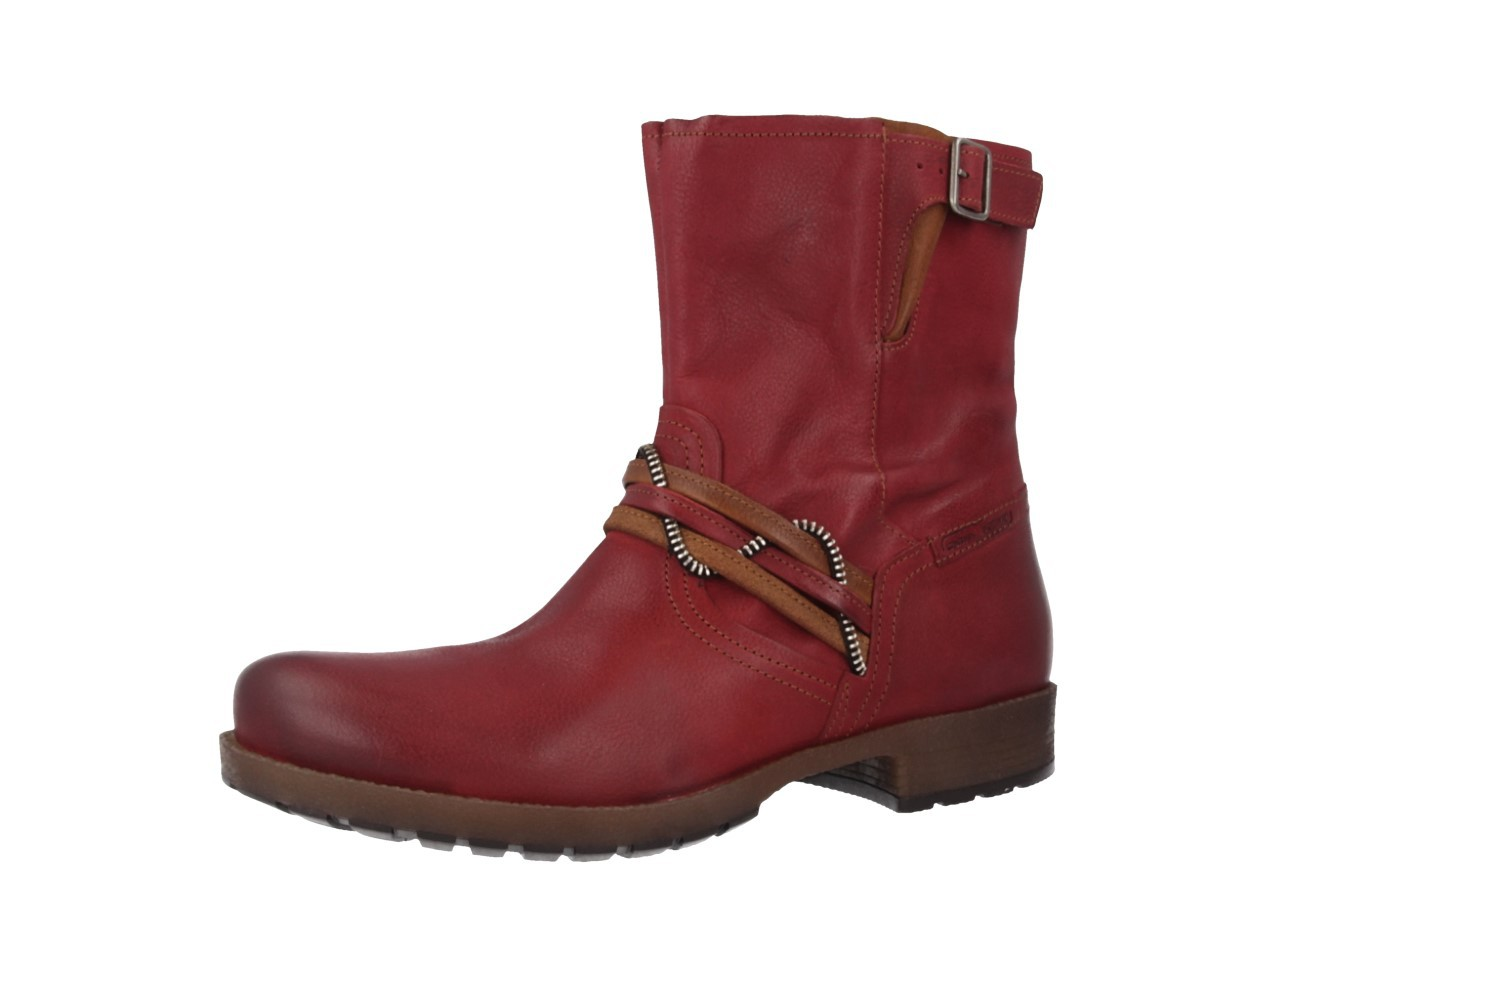 sale camel active taiga damen boots rot schuhe in. Black Bedroom Furniture Sets. Home Design Ideas